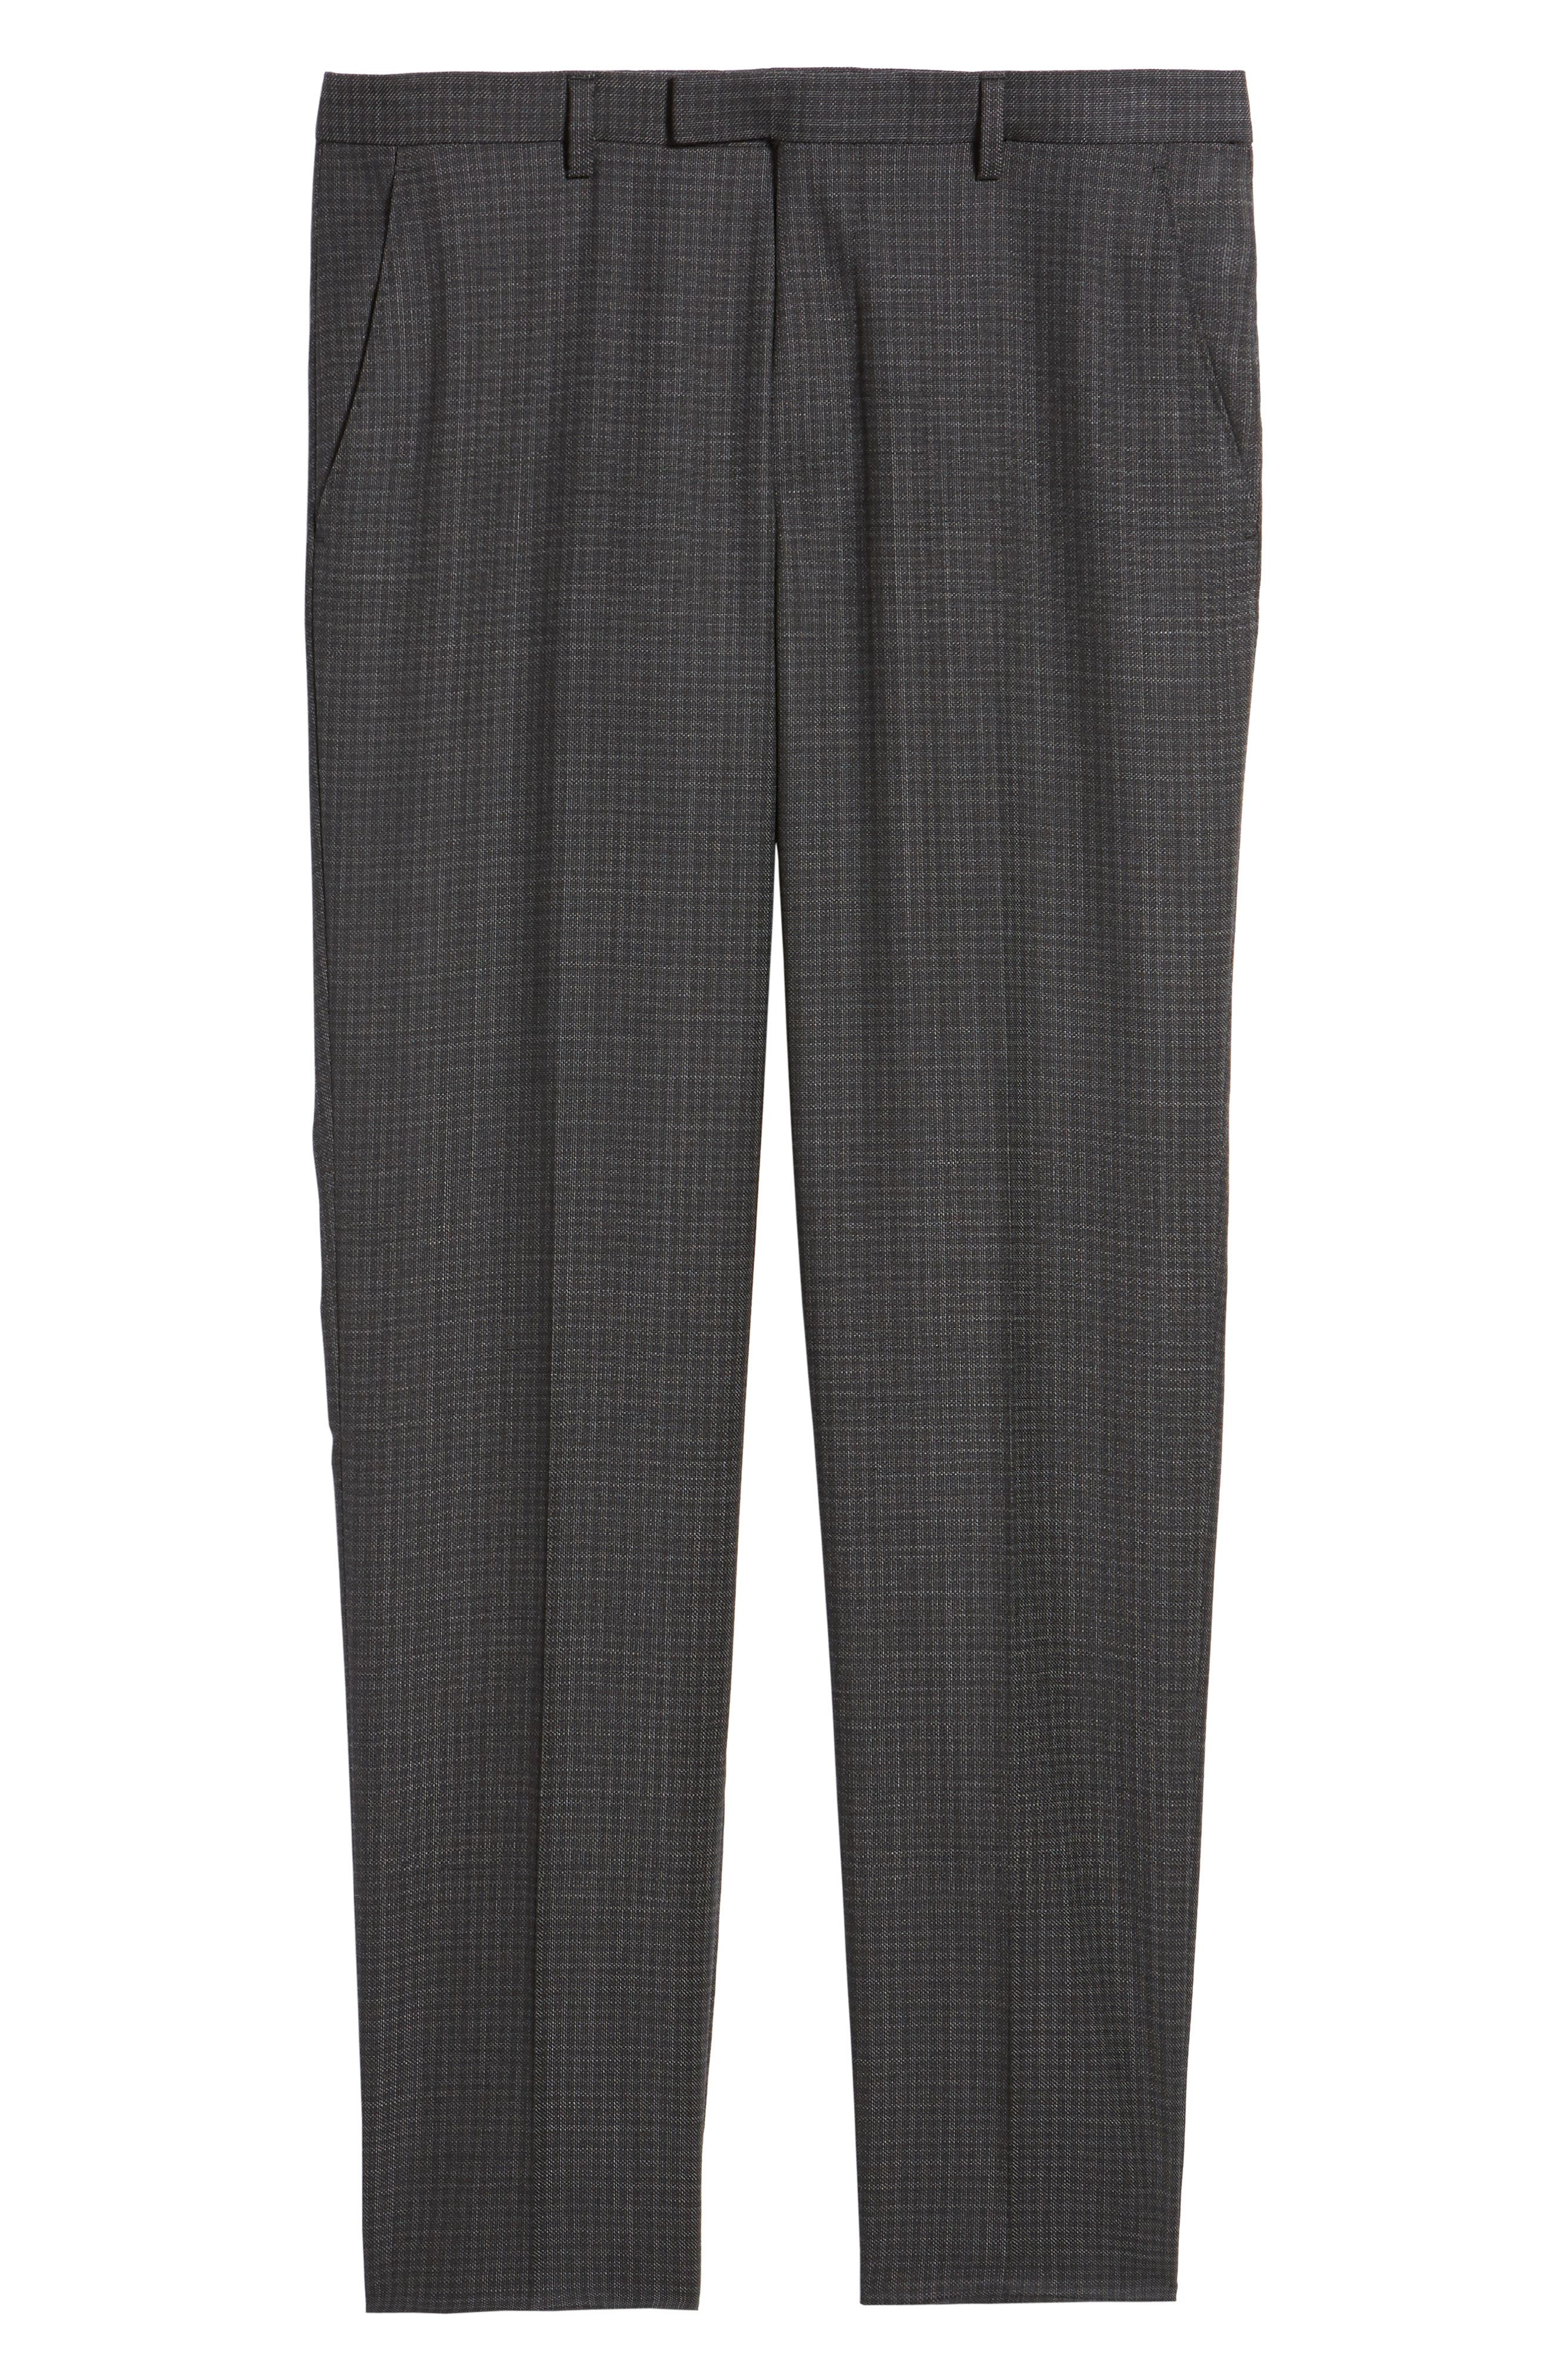 Leenon Flat Front Regular Fit Check Wool Trousers,                             Alternate thumbnail 6, color,                             001